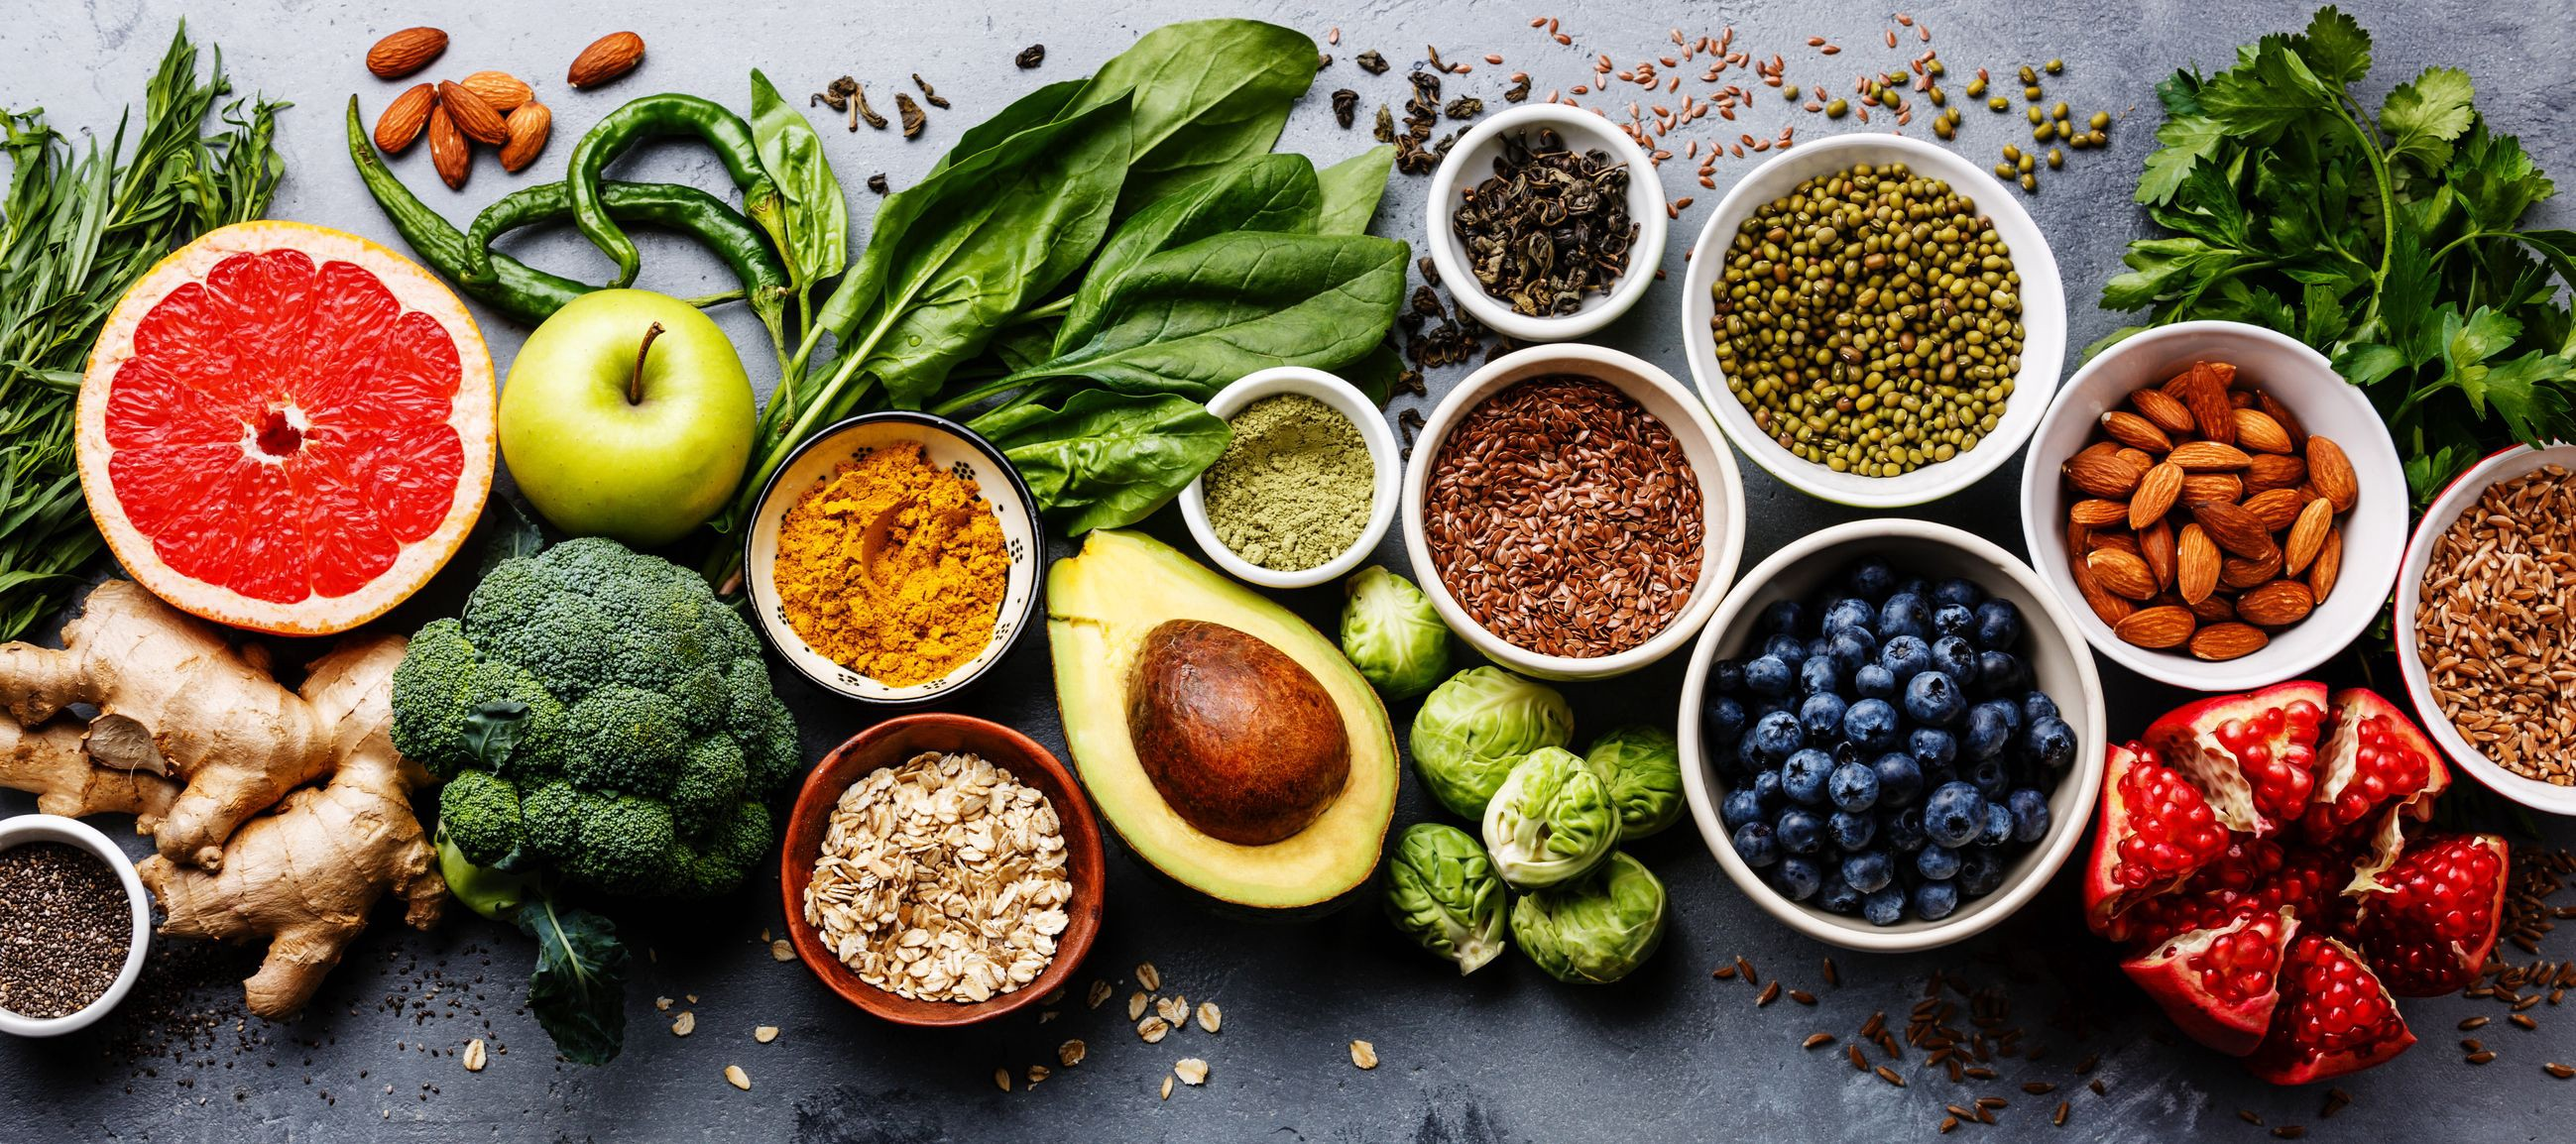 Learn How You Can Embrace a Vegan Lifestyle - 24 Mantra Organic